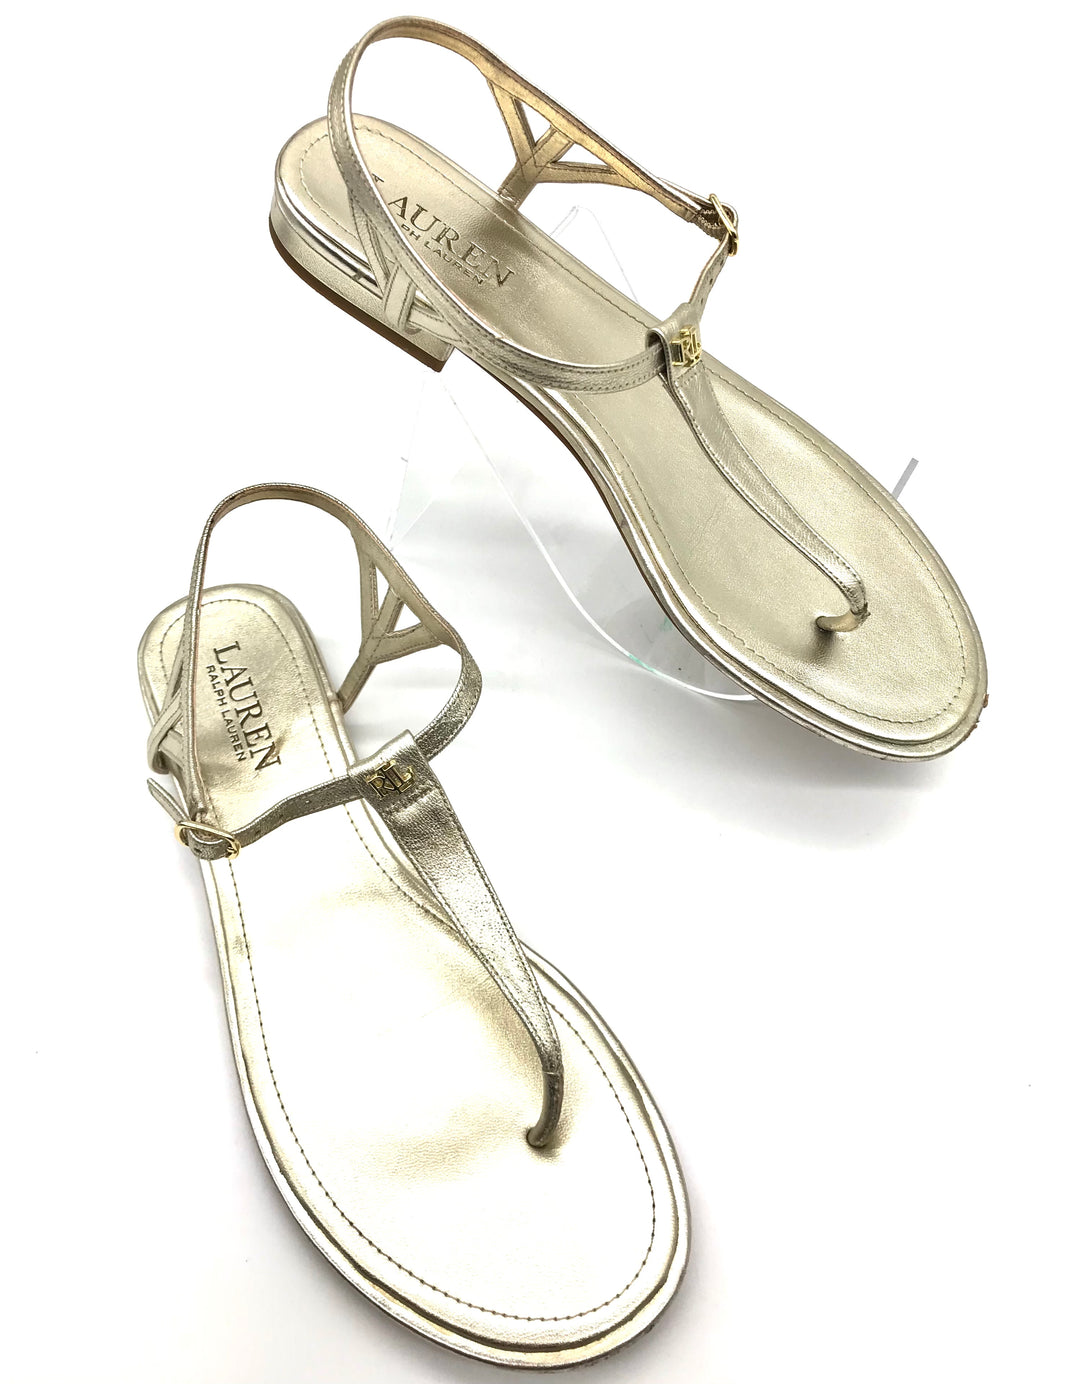 Primary Photo - BRAND: RALPH LAUREN <BR>STYLE: SANDALS FLAT <BR>COLOR: GOLD <BR>SIZE: 7.5 <BR>SKU: 262-26275-70162<BR>GENTLE SCUFFING ON THE TOE AND HEELS - AS IS